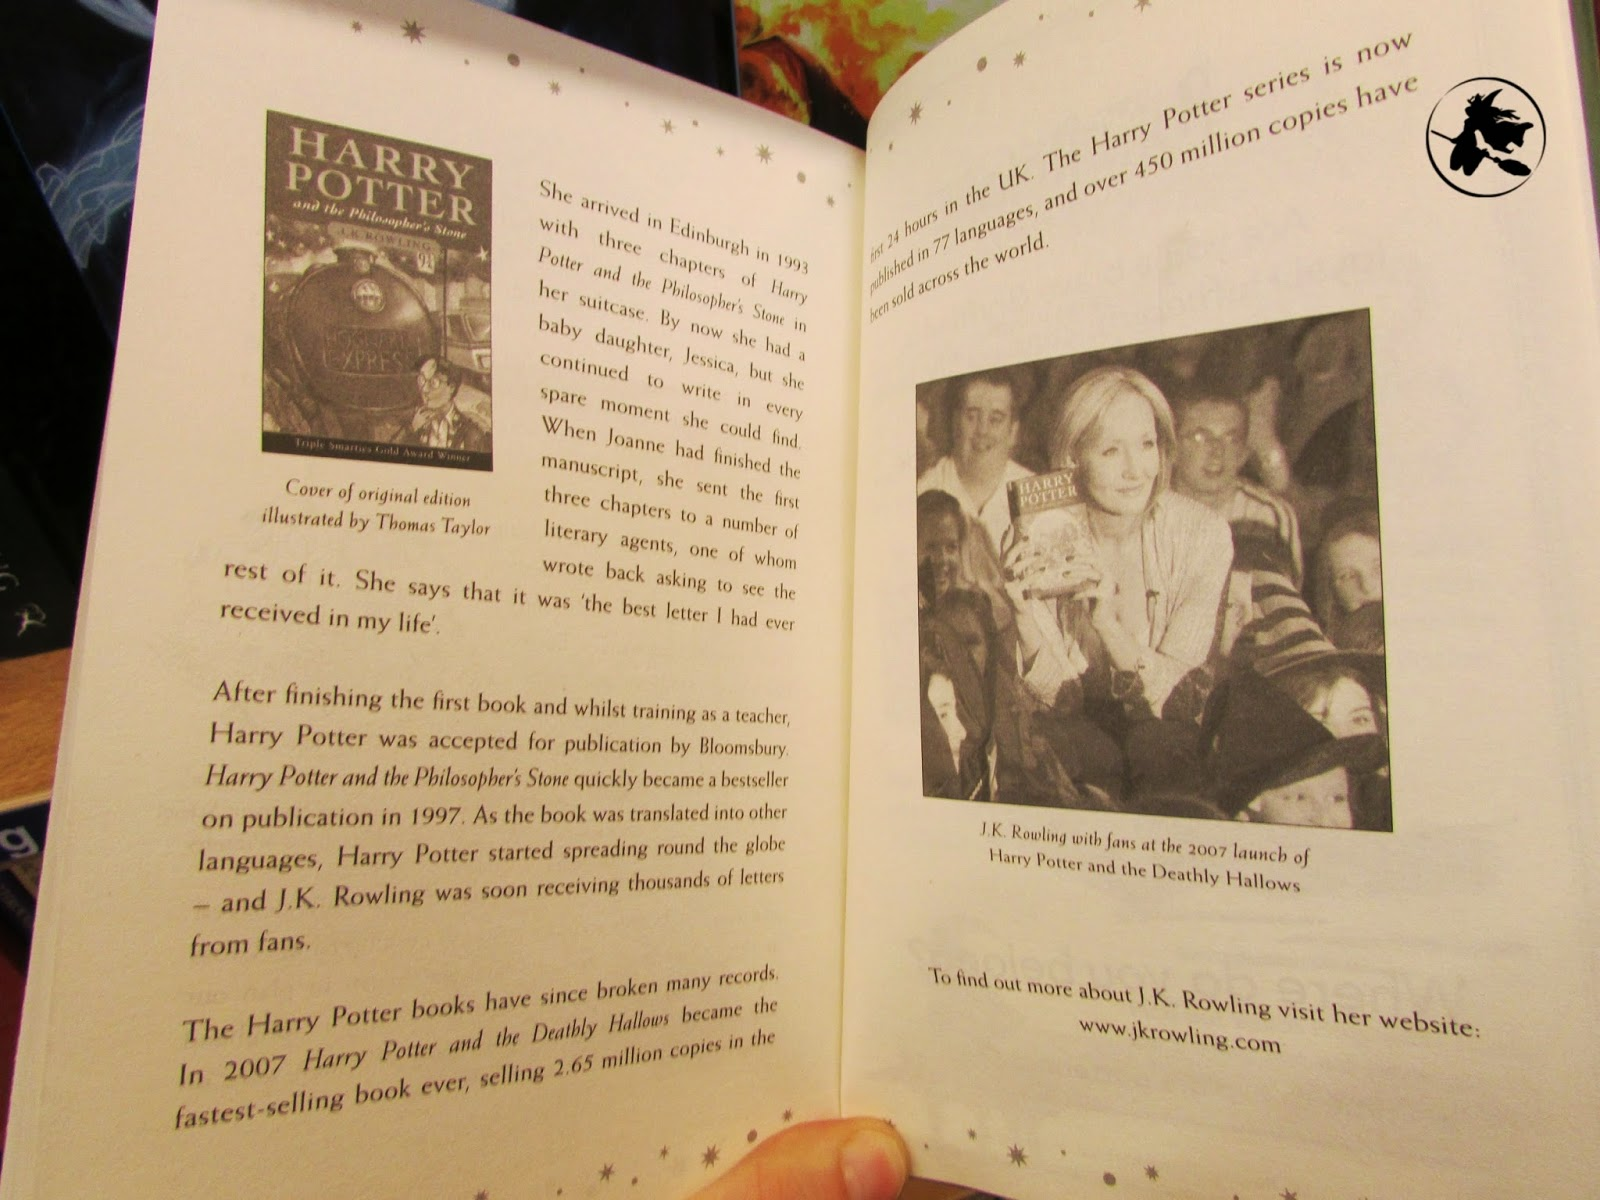 Paginas De Los Libros De Harry Potter Harry Potter Fans Spain Se Filtran Extras De La Reedición